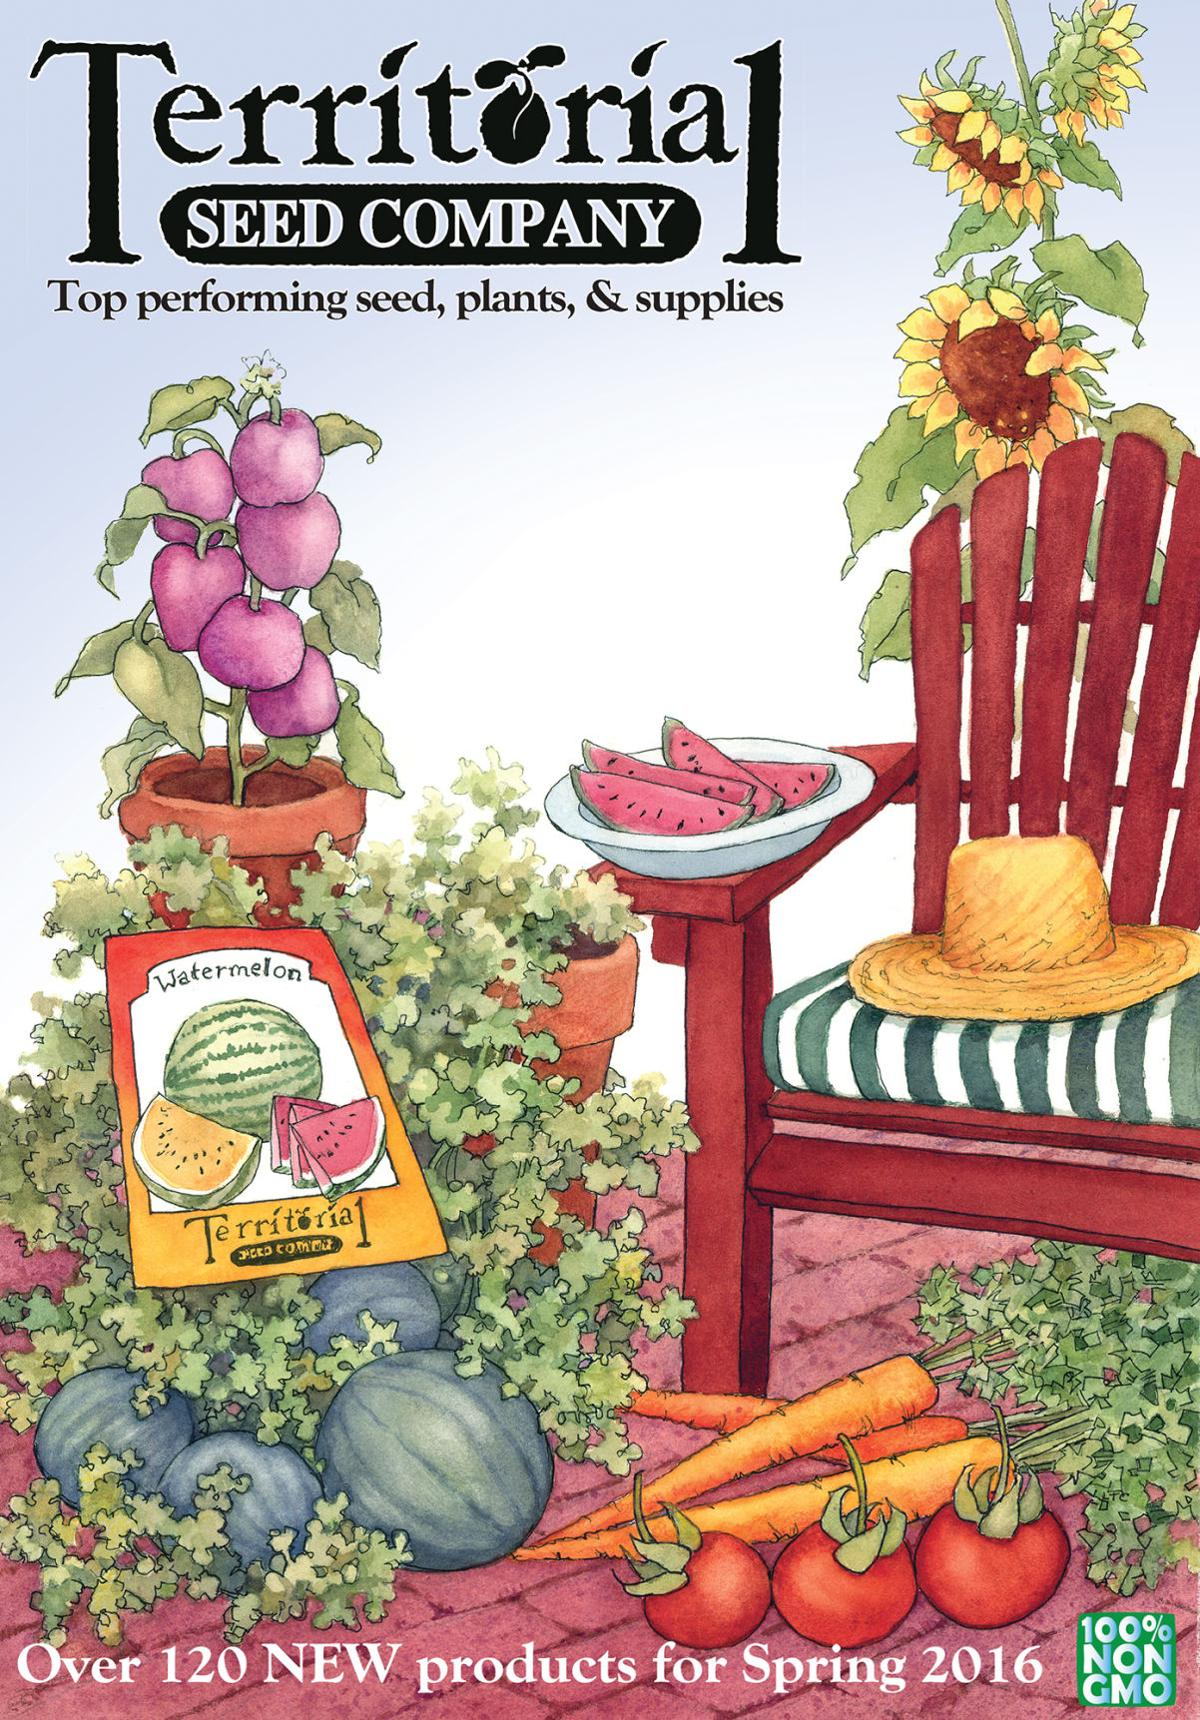 We asked and here are your favorite garden seed catalogs of 2016